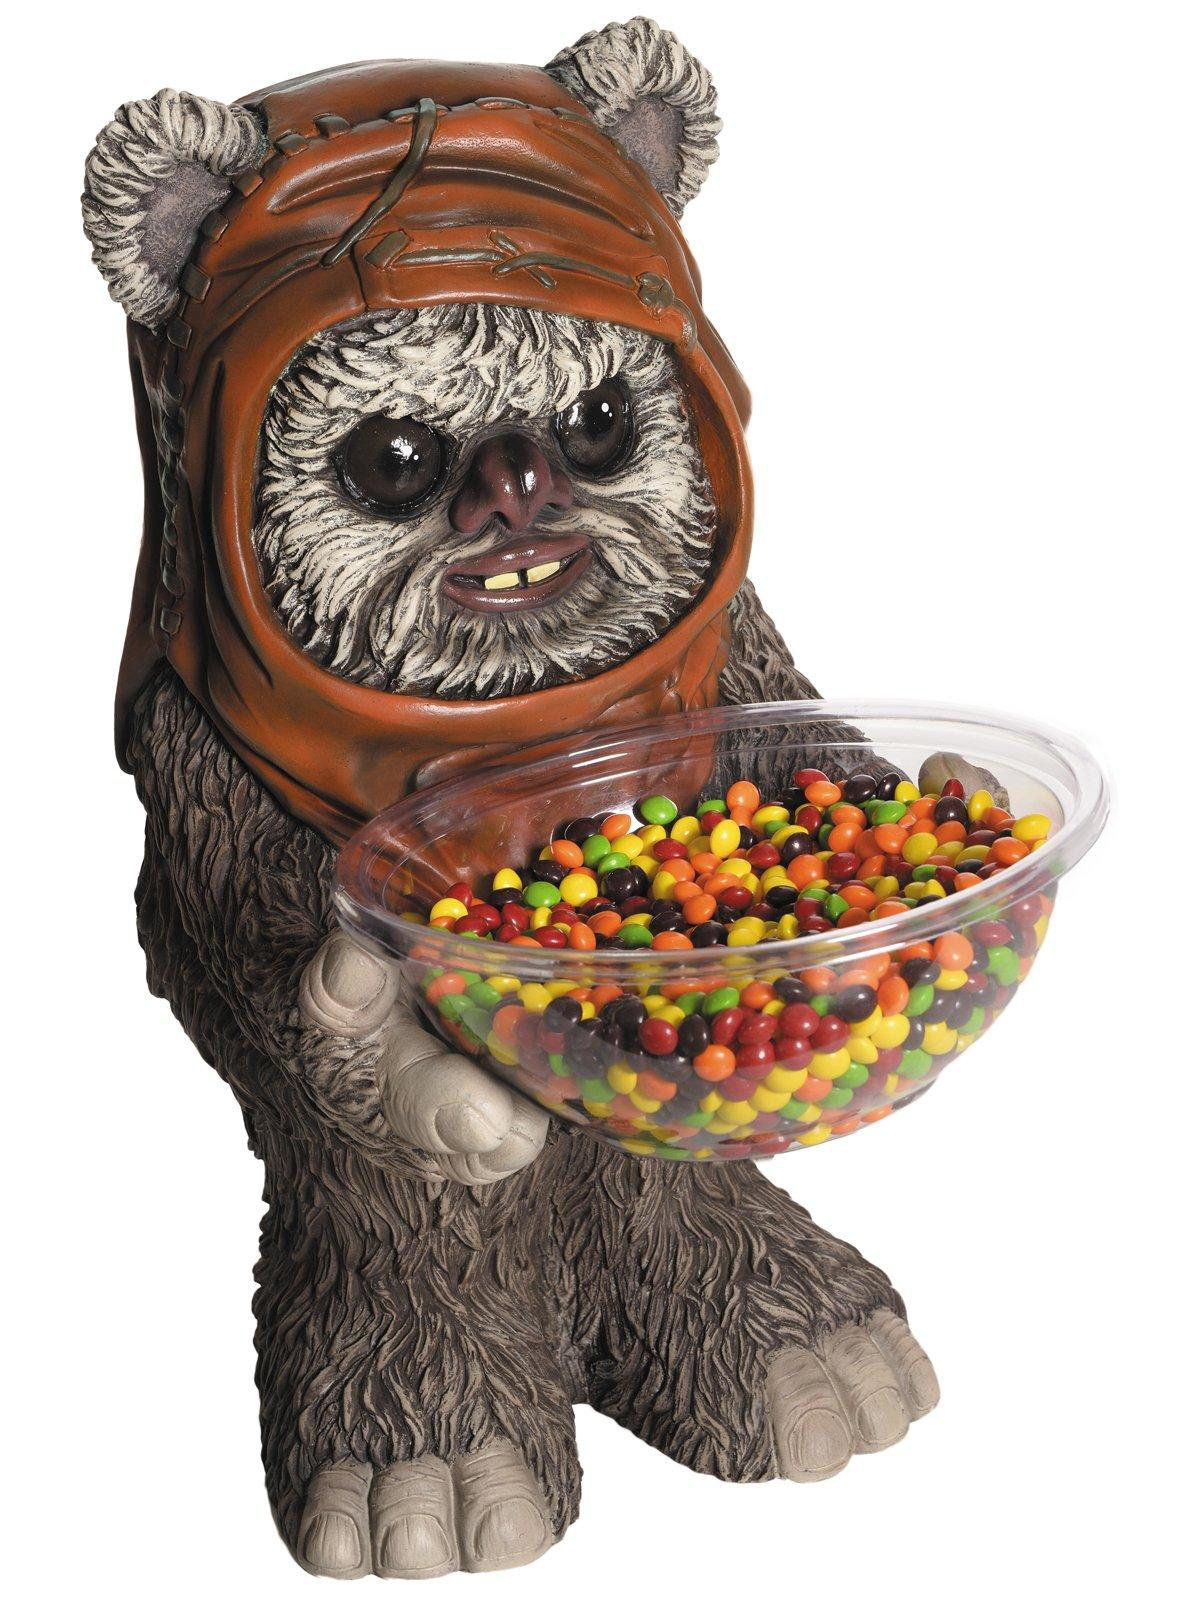 star wars ewok candy bowl and holder - halloween decorations for